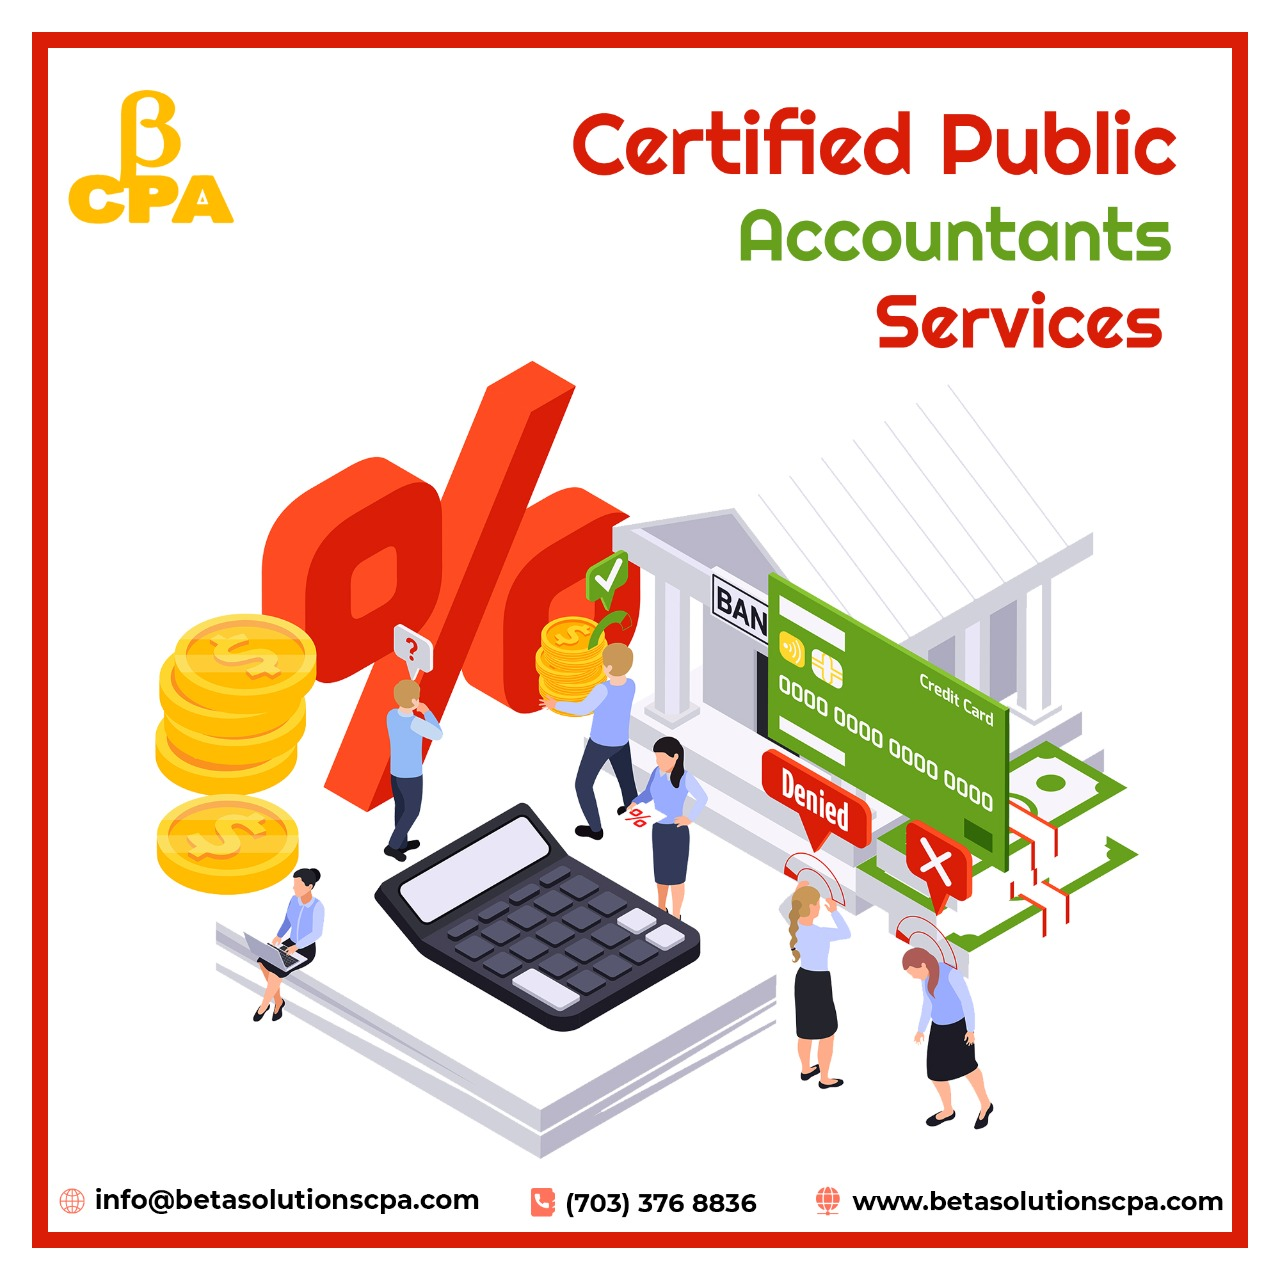 CPA Services in Tysons | Best Tax Accountant in Herndon